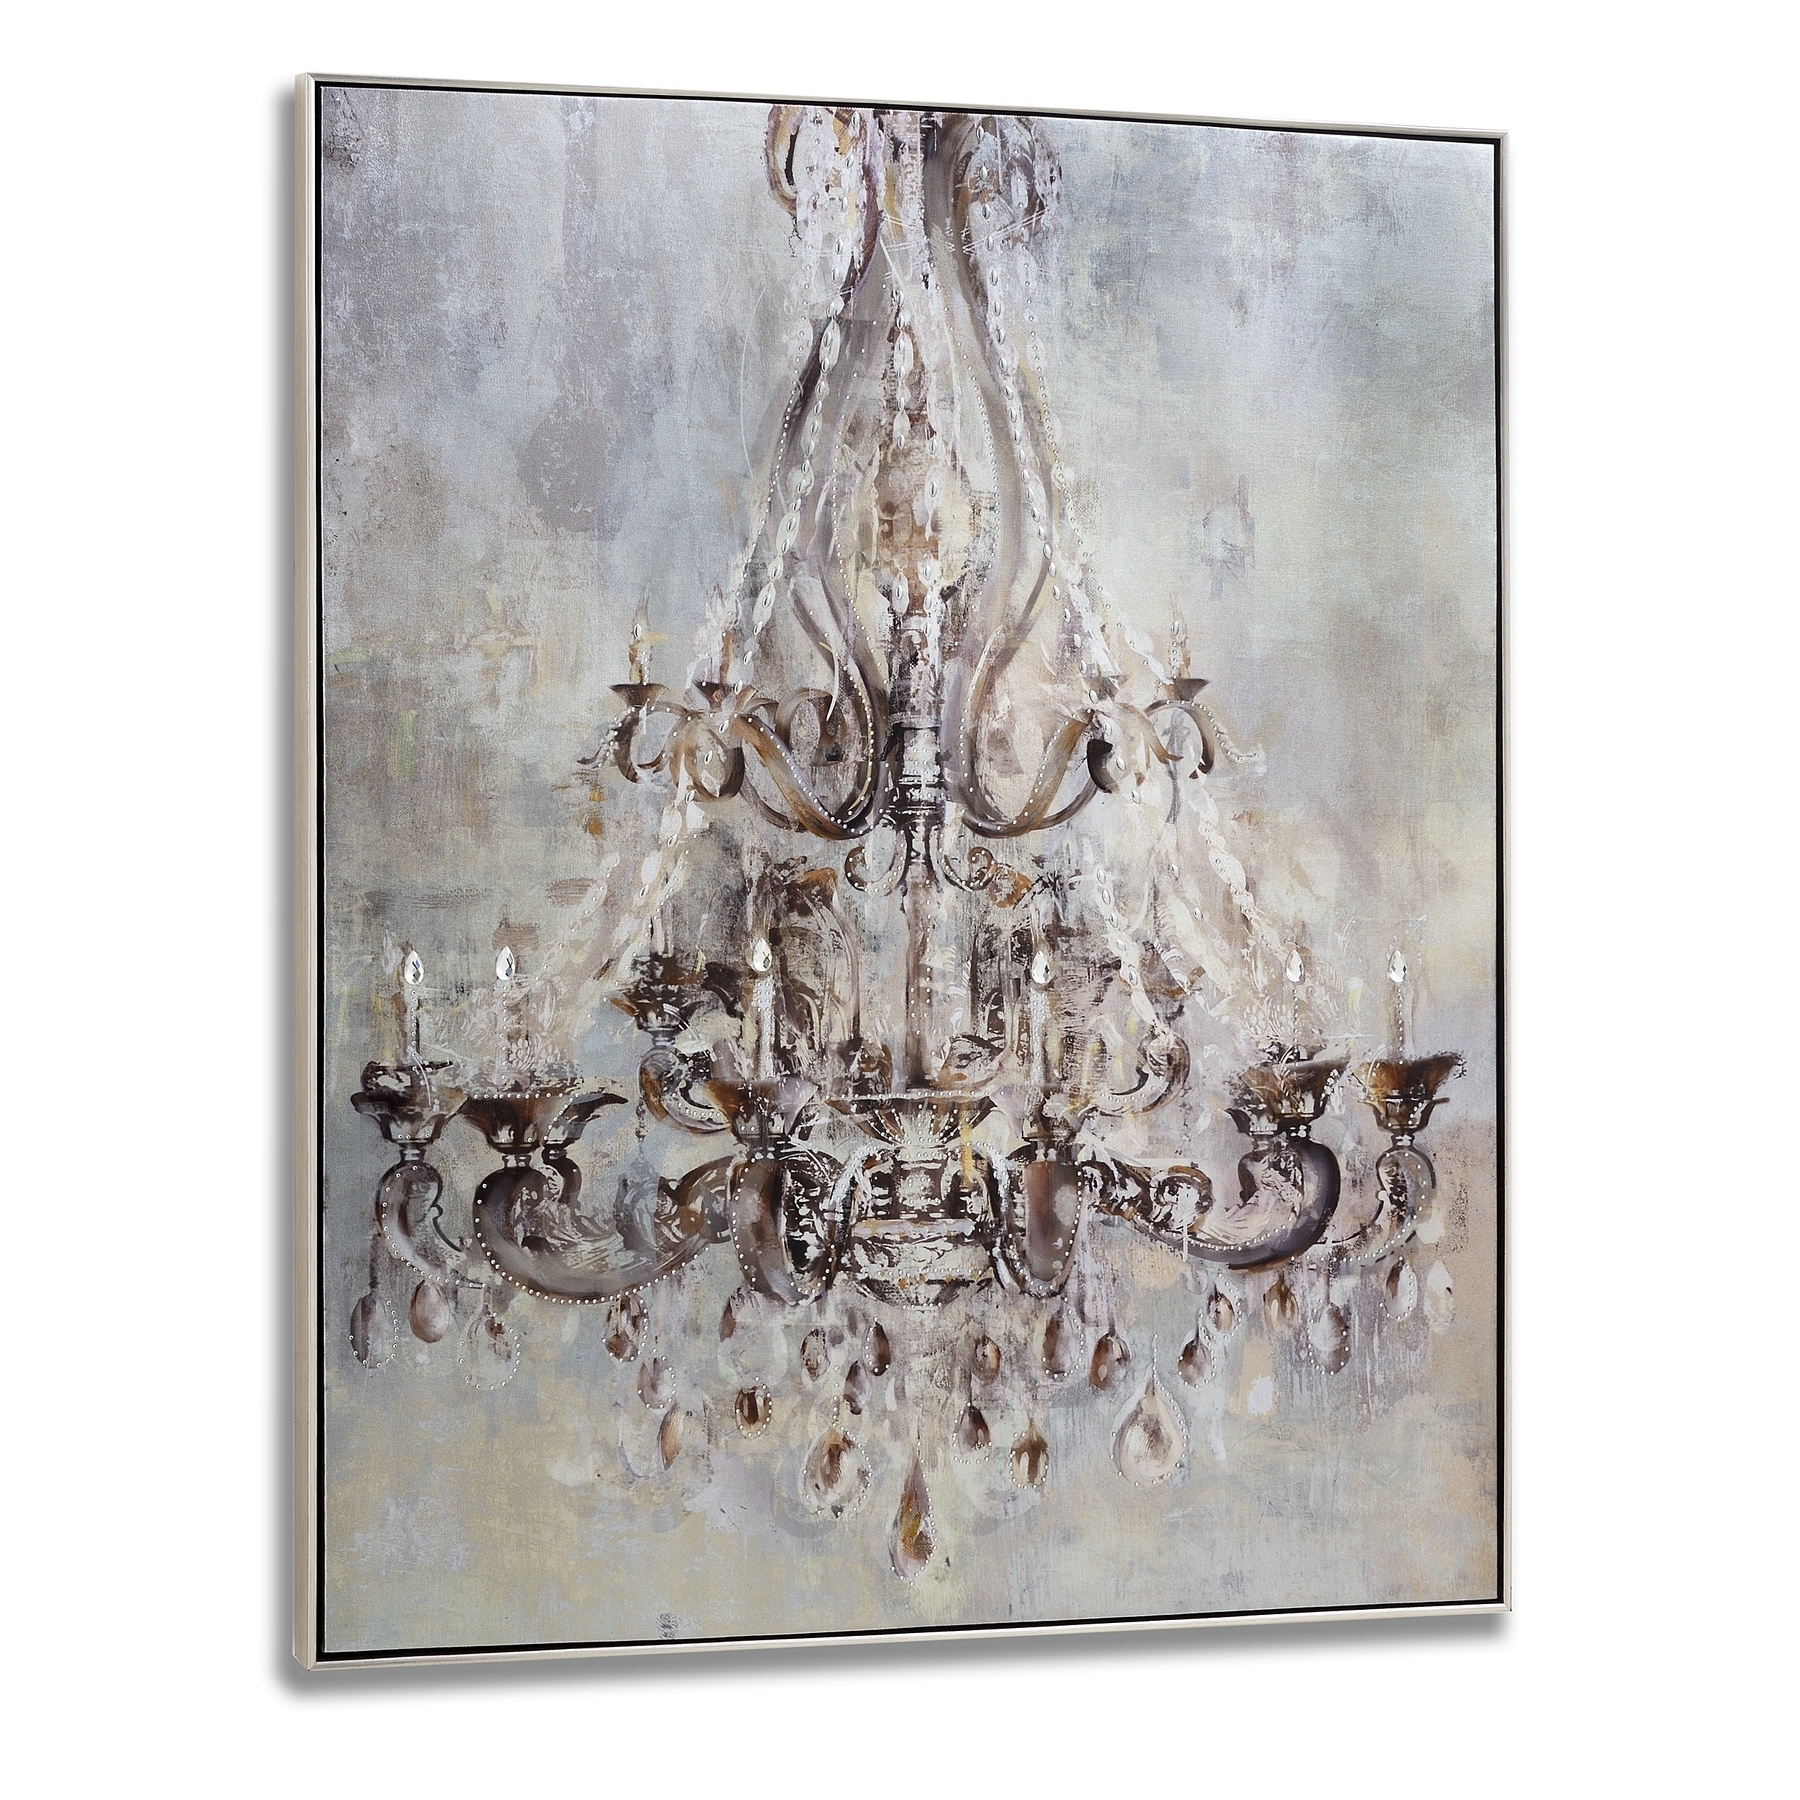 From Baytree In Most Popular Chandelier Wall Art (View 2 of 15)